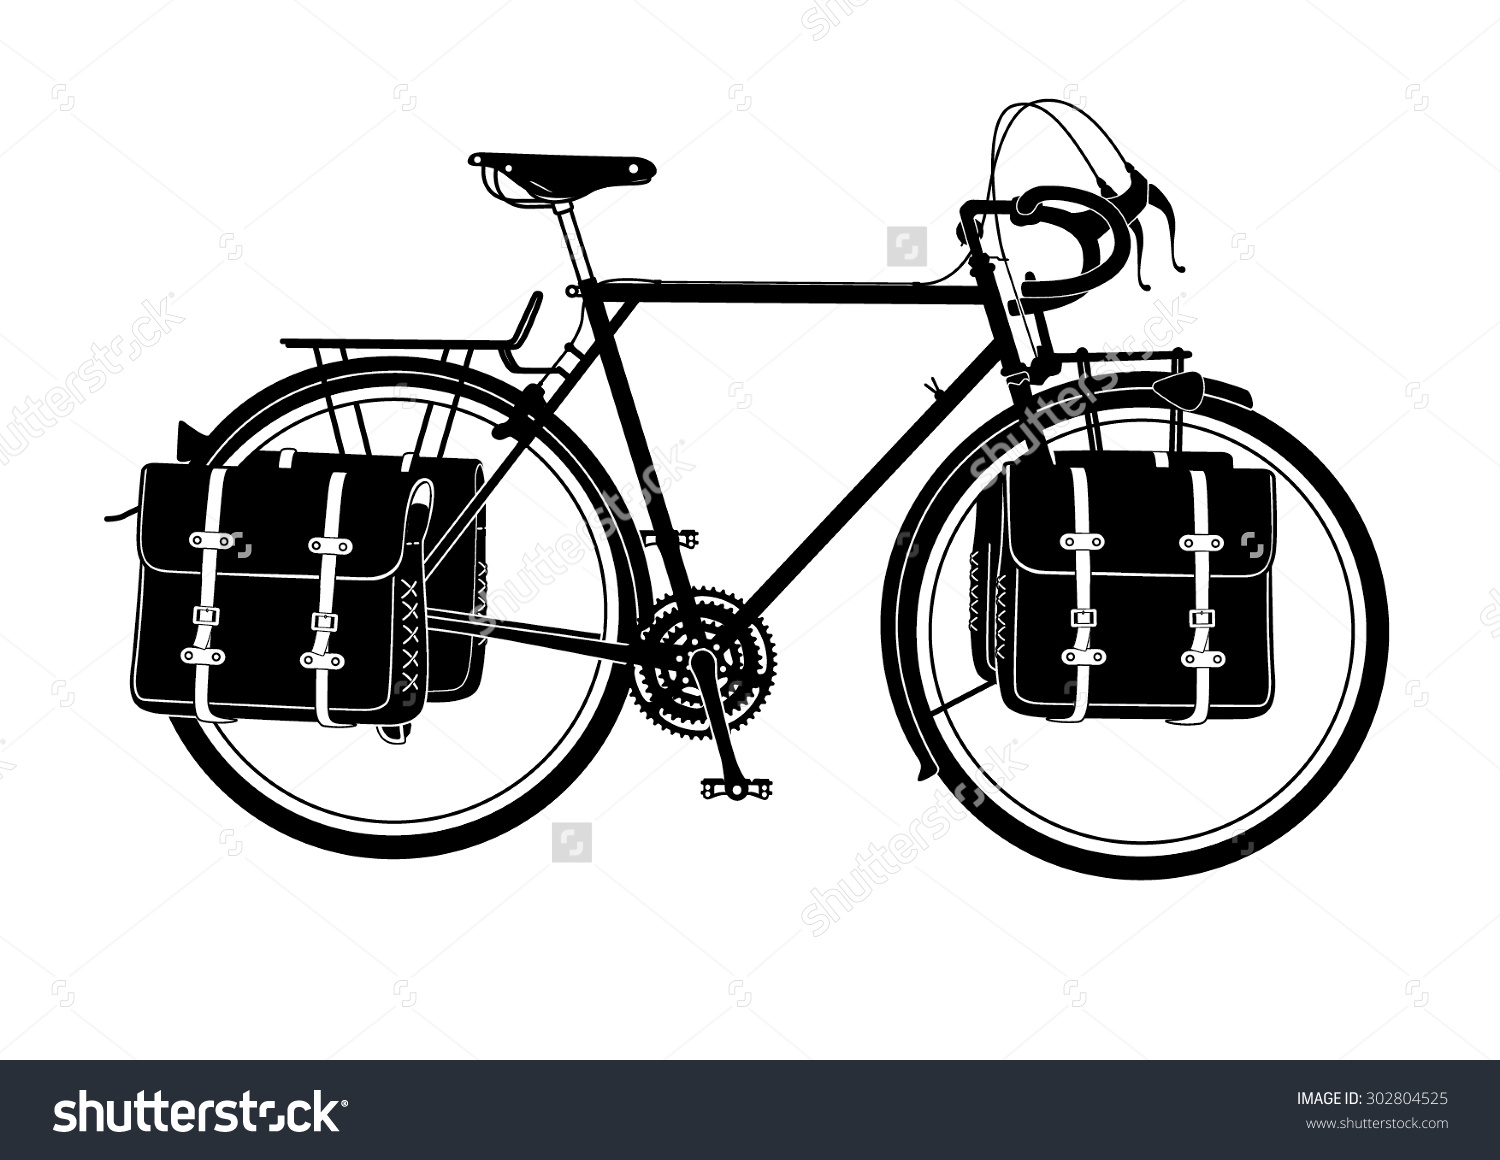 Vintage Full Loaded Touring Bicycle Vector Stock Vector 302804525.